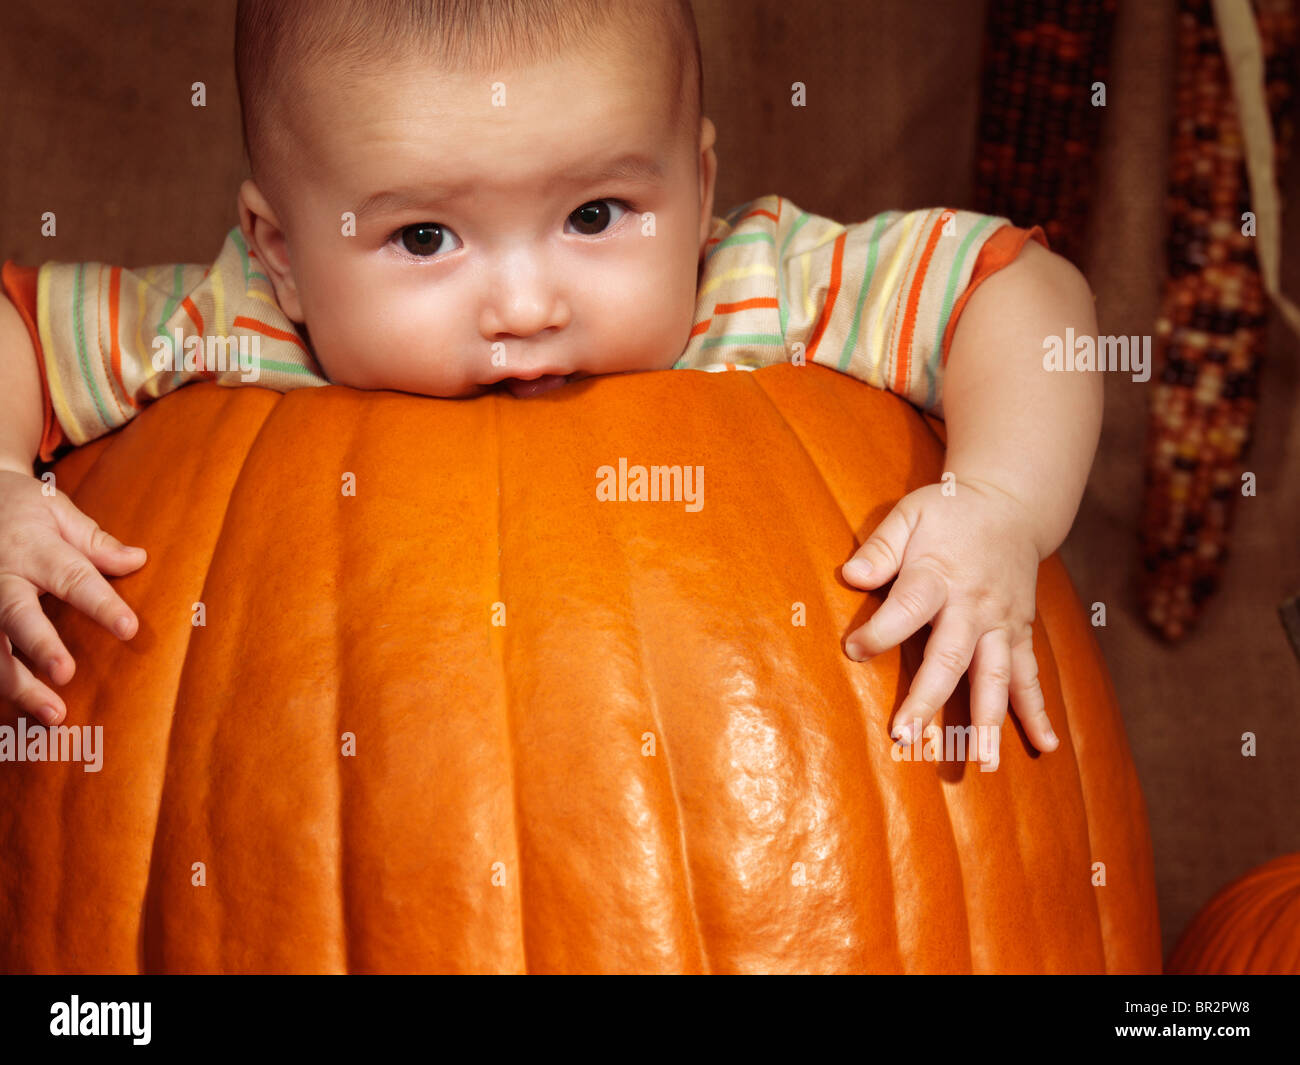 Baby boy sitting inside a big pumpkin. Fall season holidays Thanksgiving and Halloween humorous artistic portrait. - Stock Image